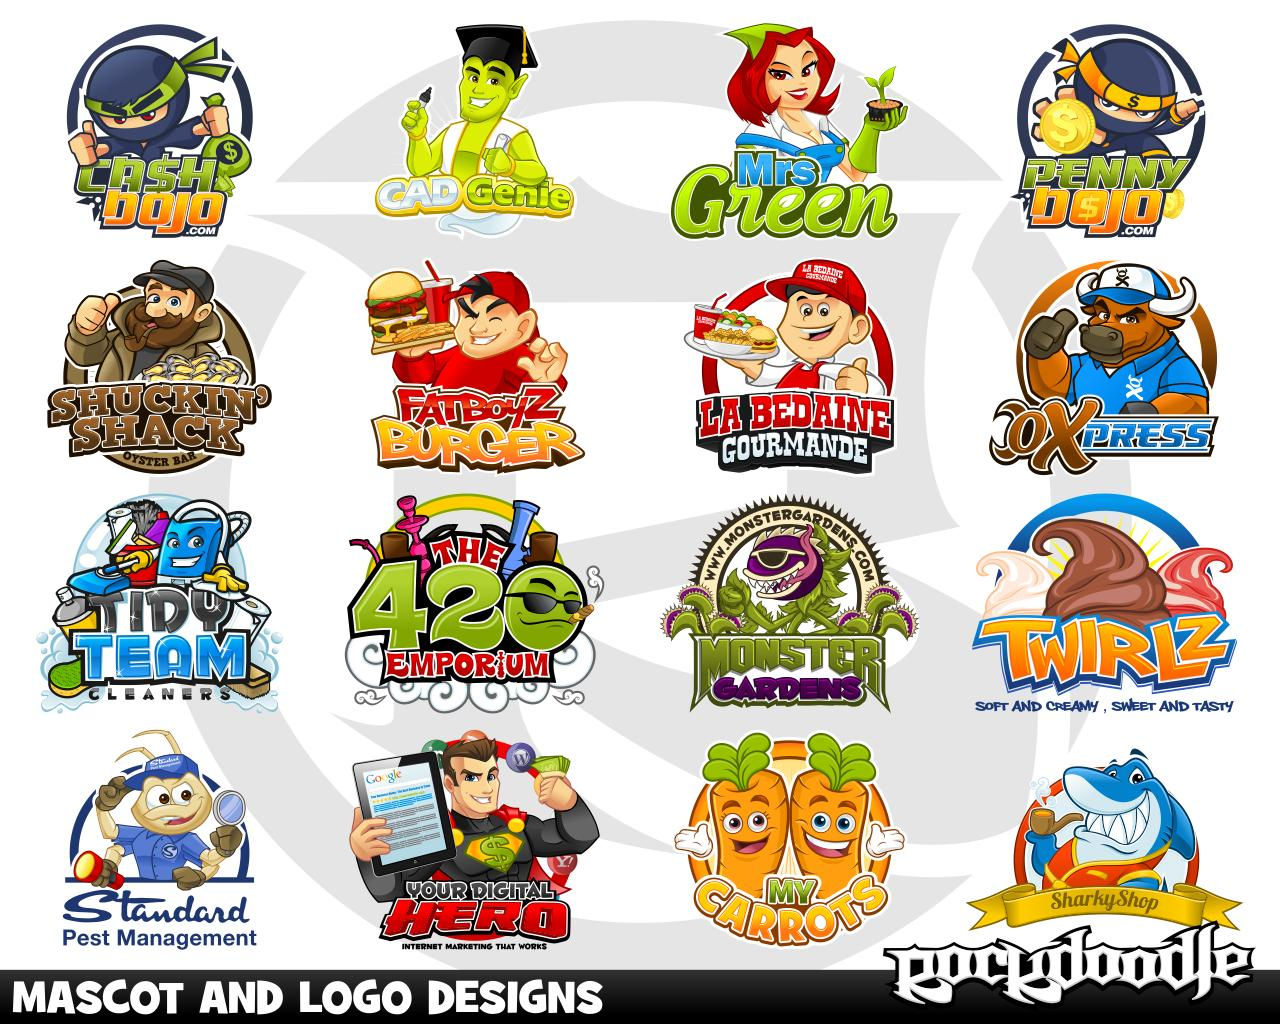 Mascot and Logo Designs by Rockdoodle - 64664